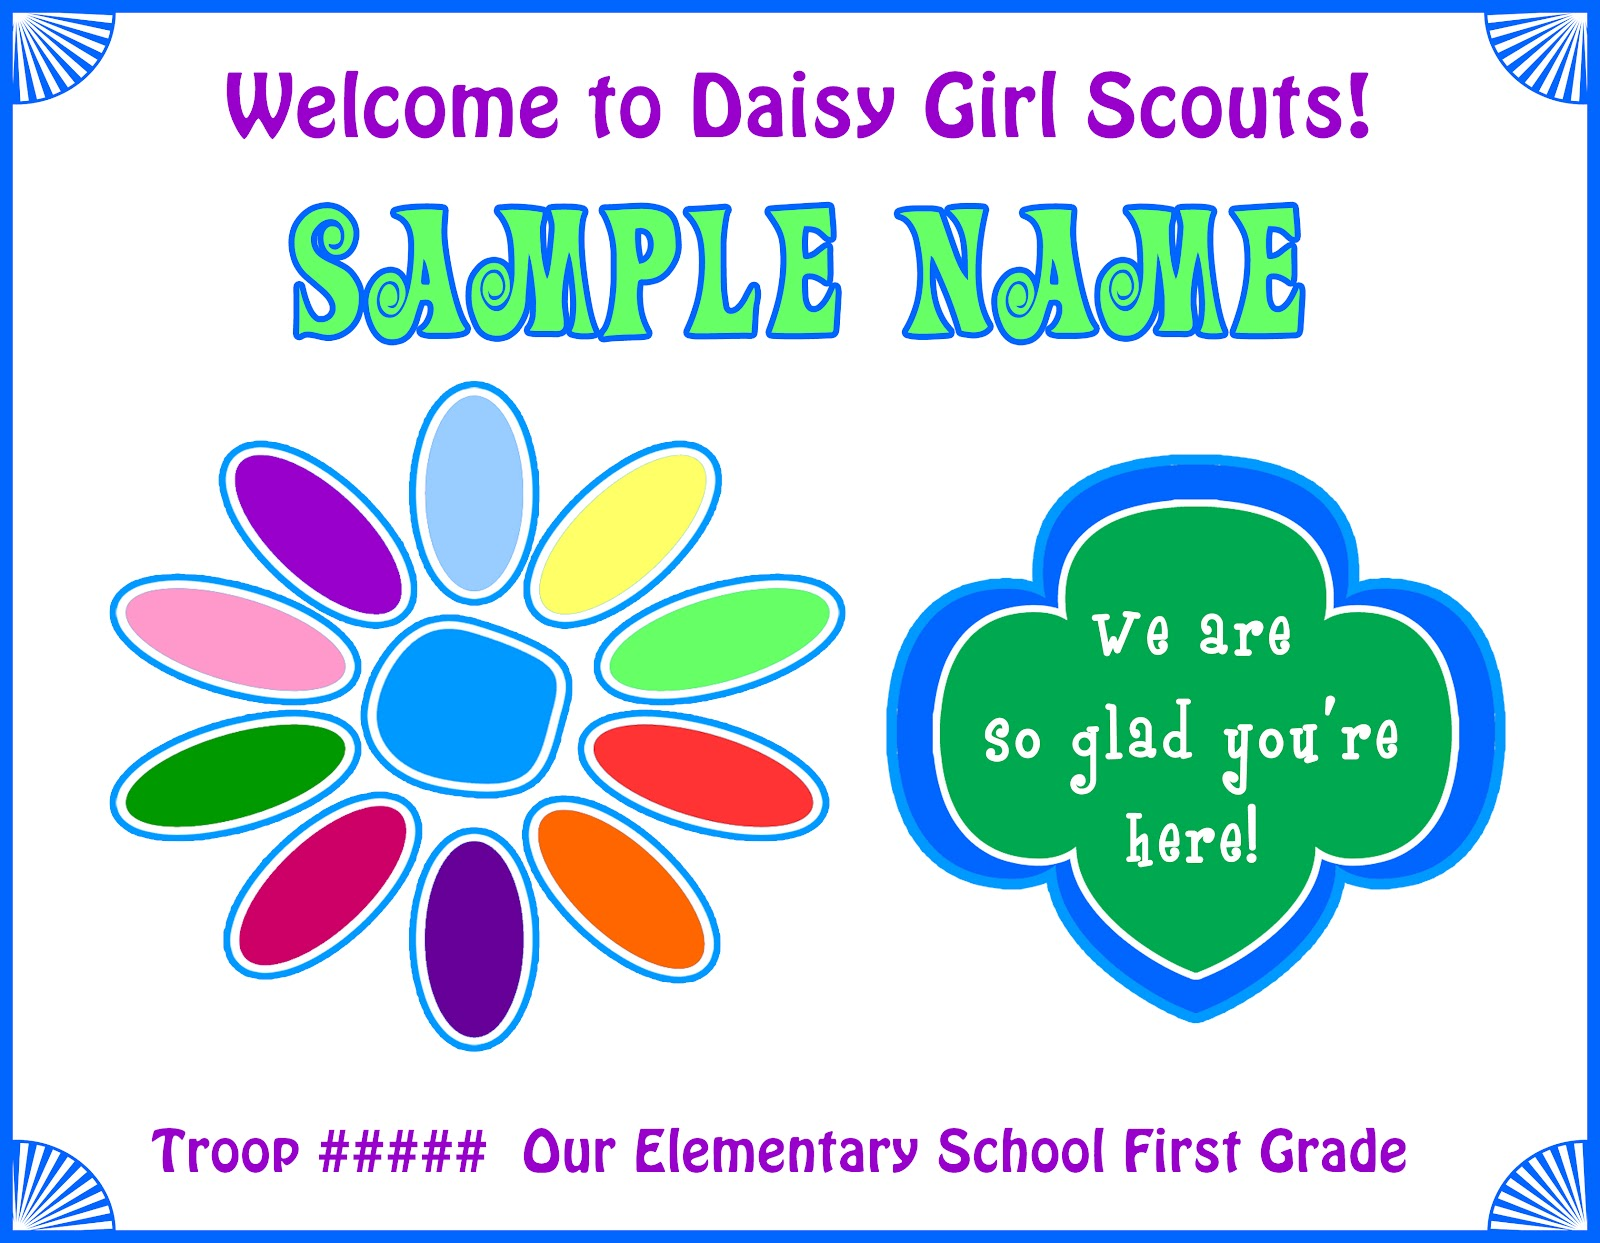 Girl Scout Daisy Name Tag Template